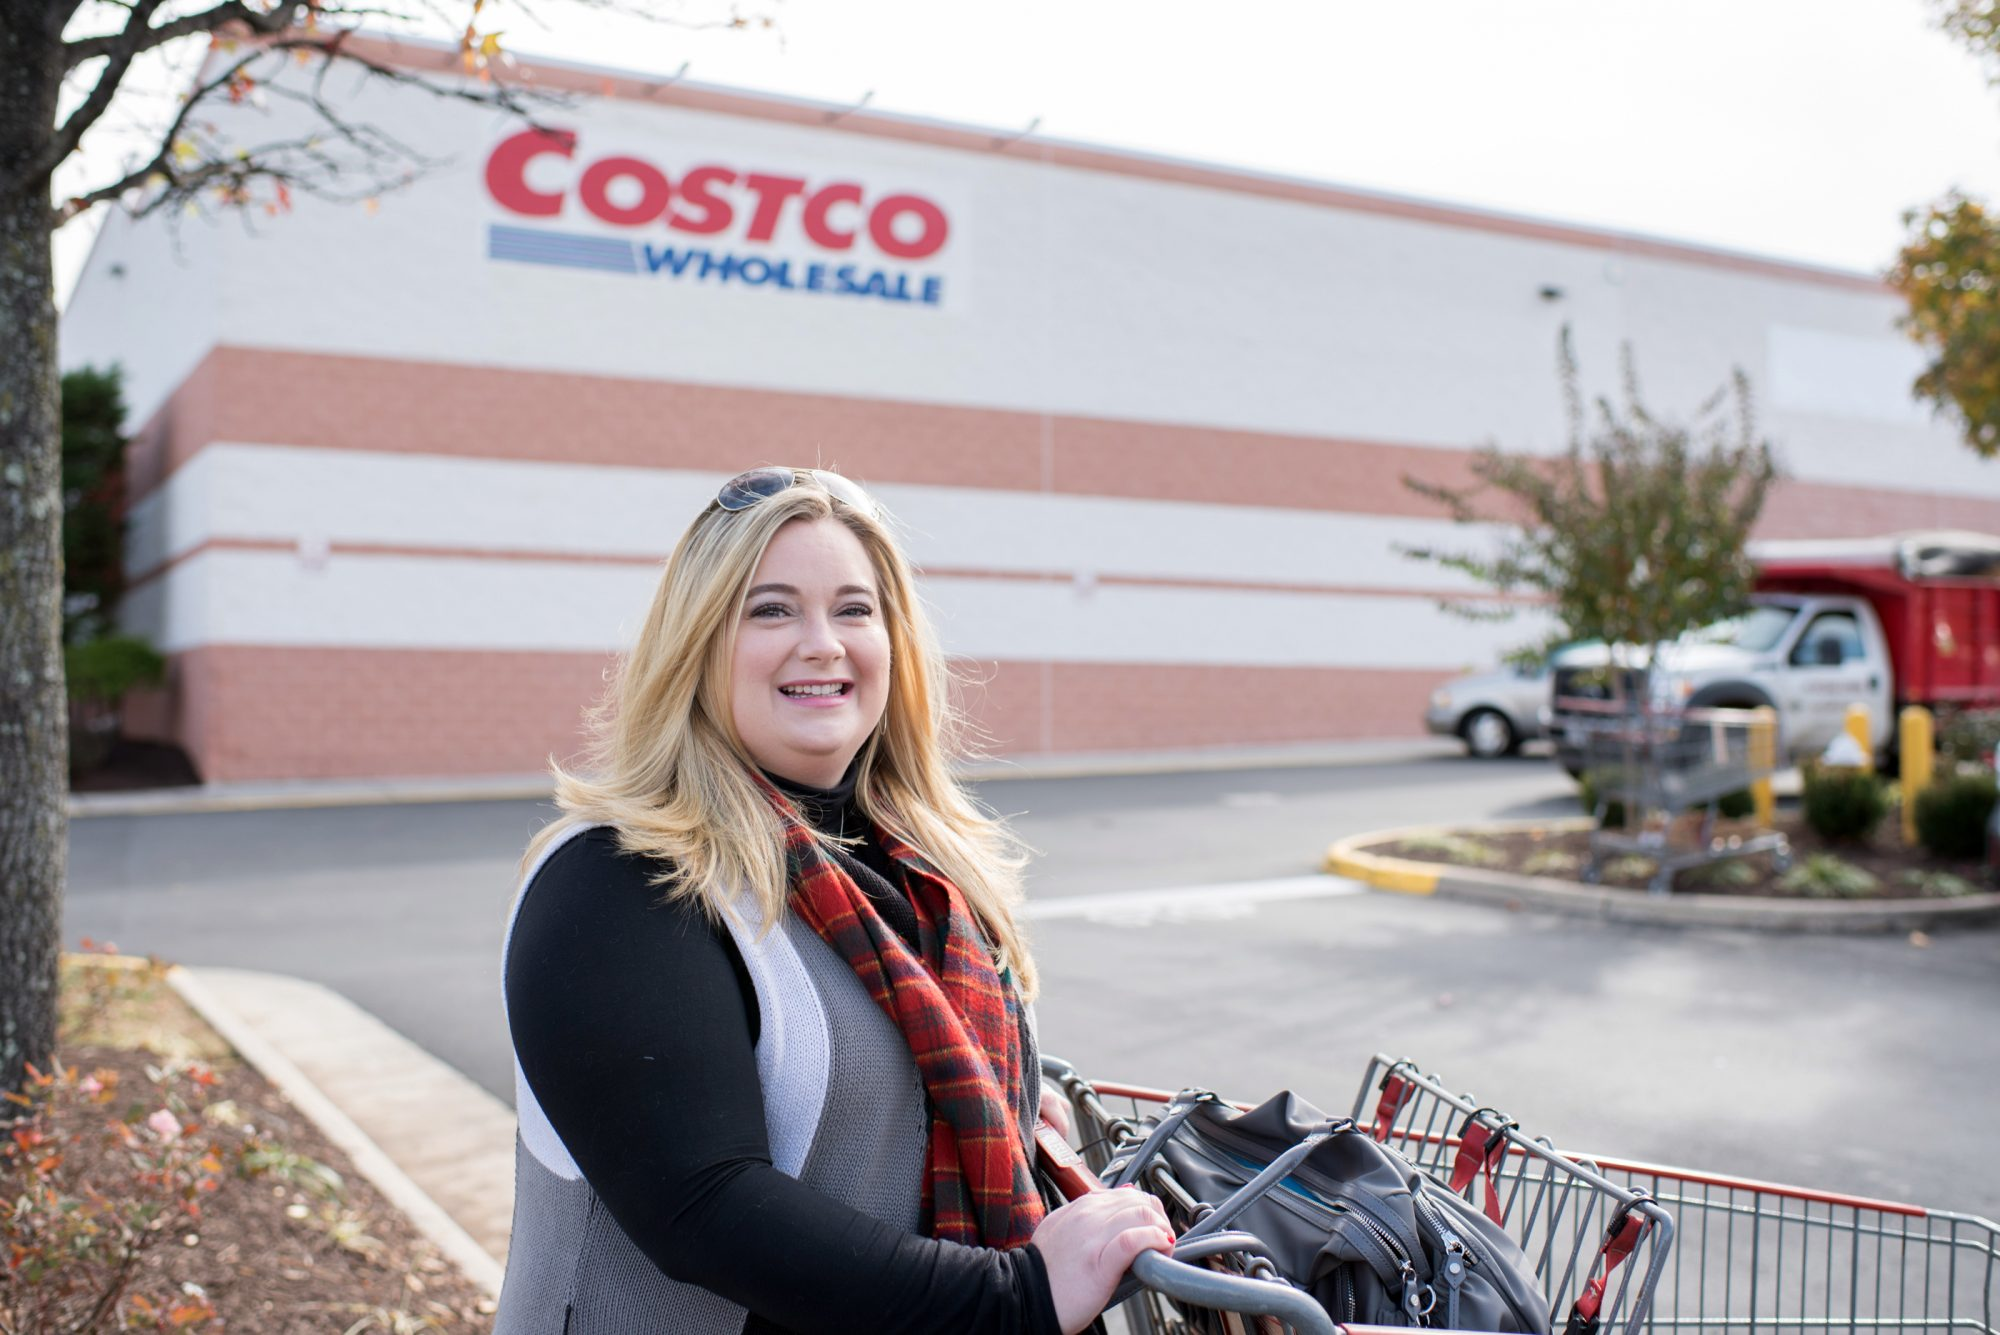 This Woman Has Traveled to 179 Costcos in 33 States and 5 Countries. Here Are Her Best Shopping Tips